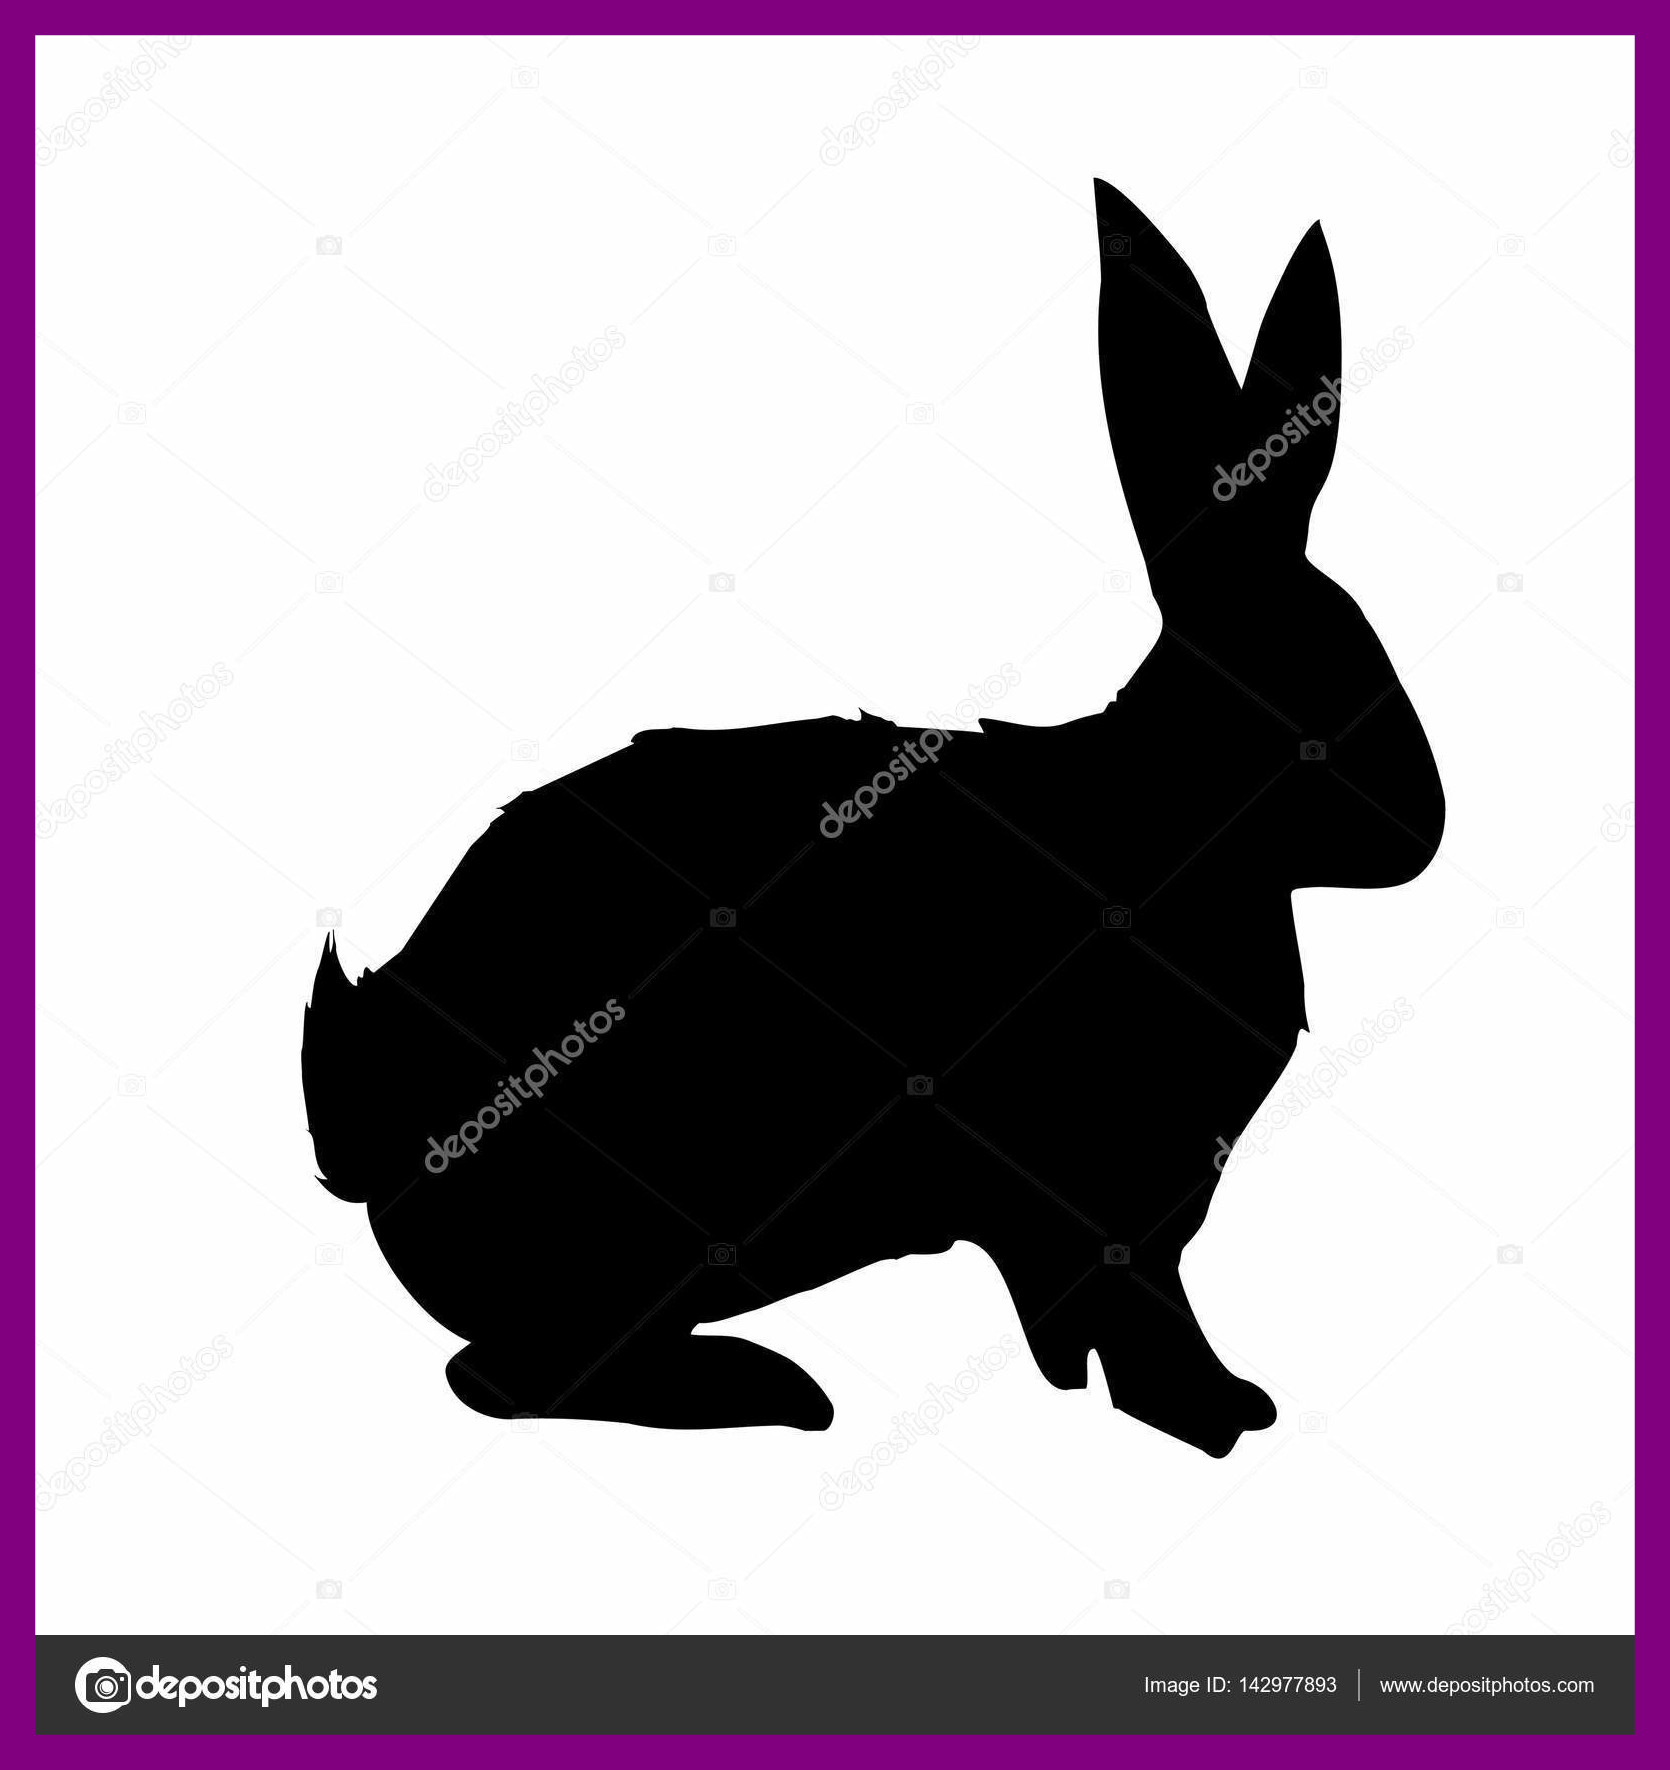 1670x1770 The Best Vector Pict For Rabbit Silhouette Style And Inspiration